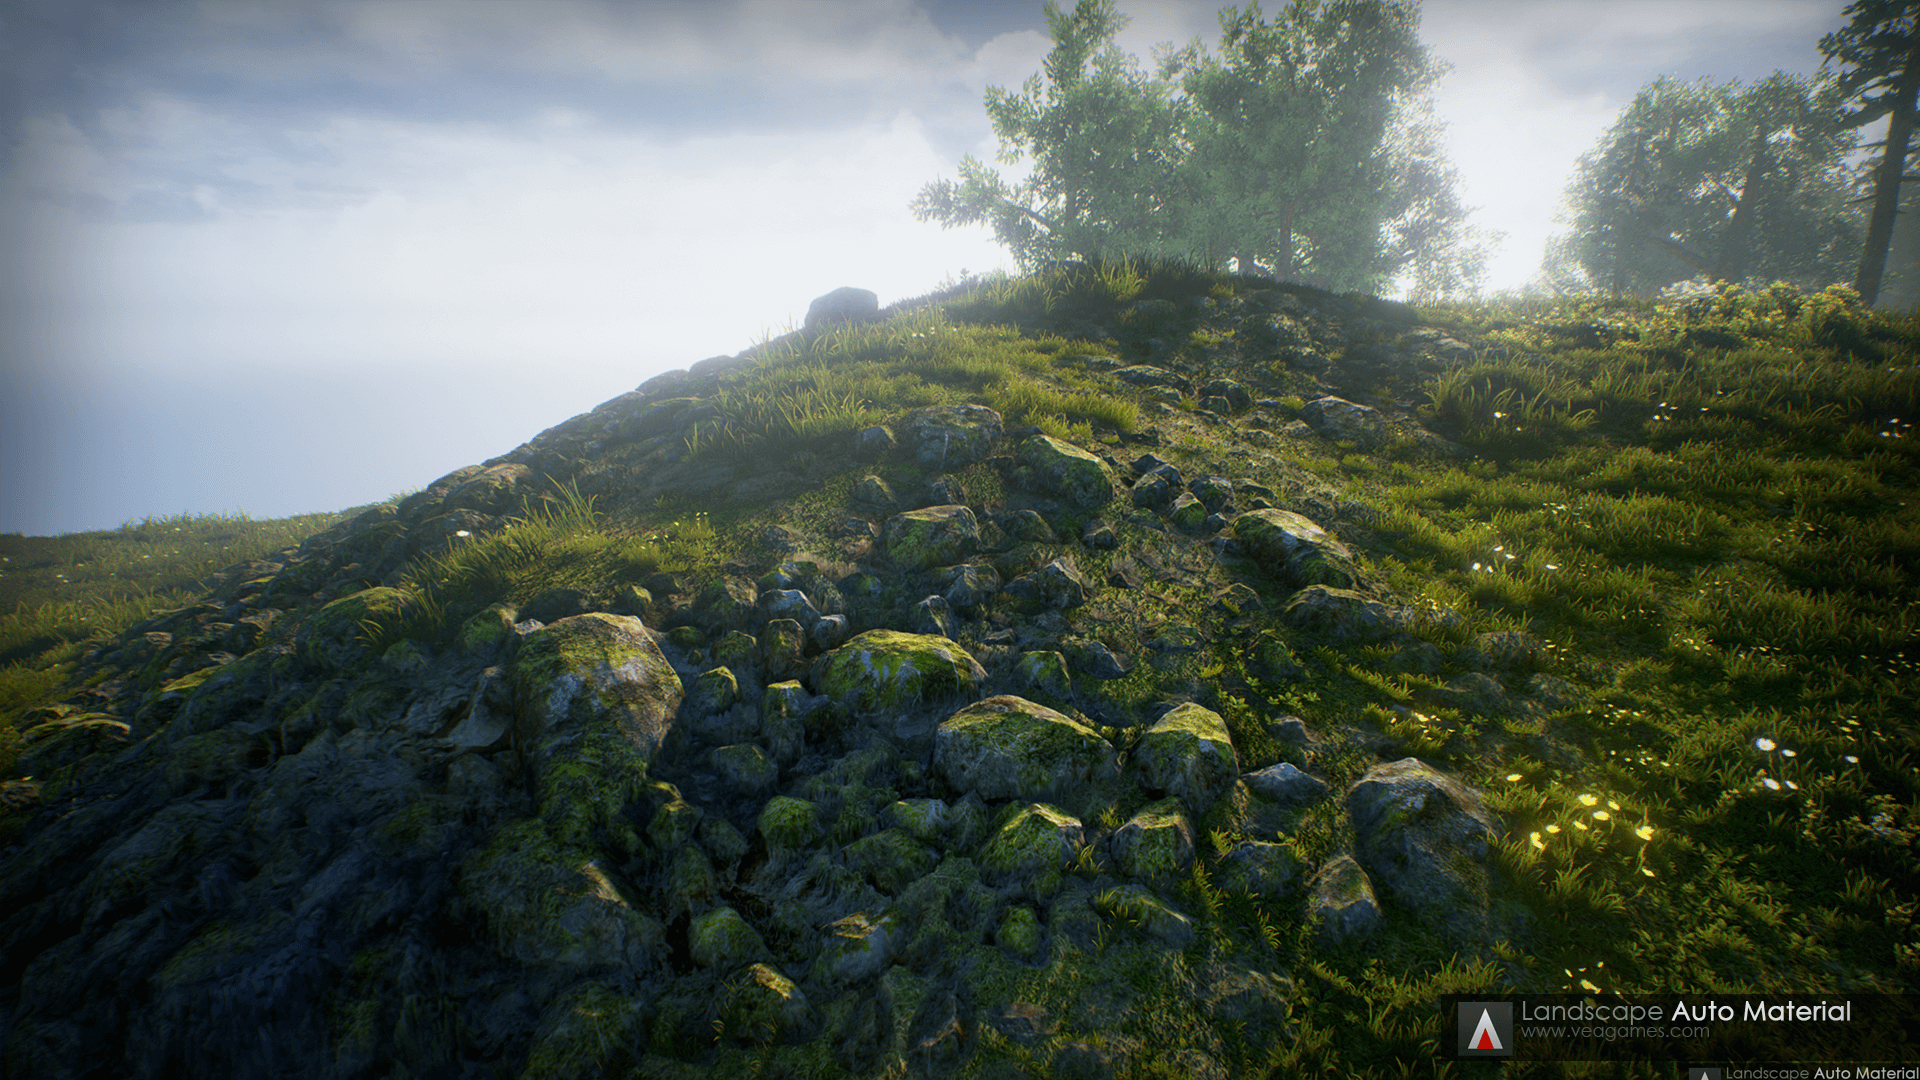 Landscape Auto Material by VEA GAMES in Environments - UE4